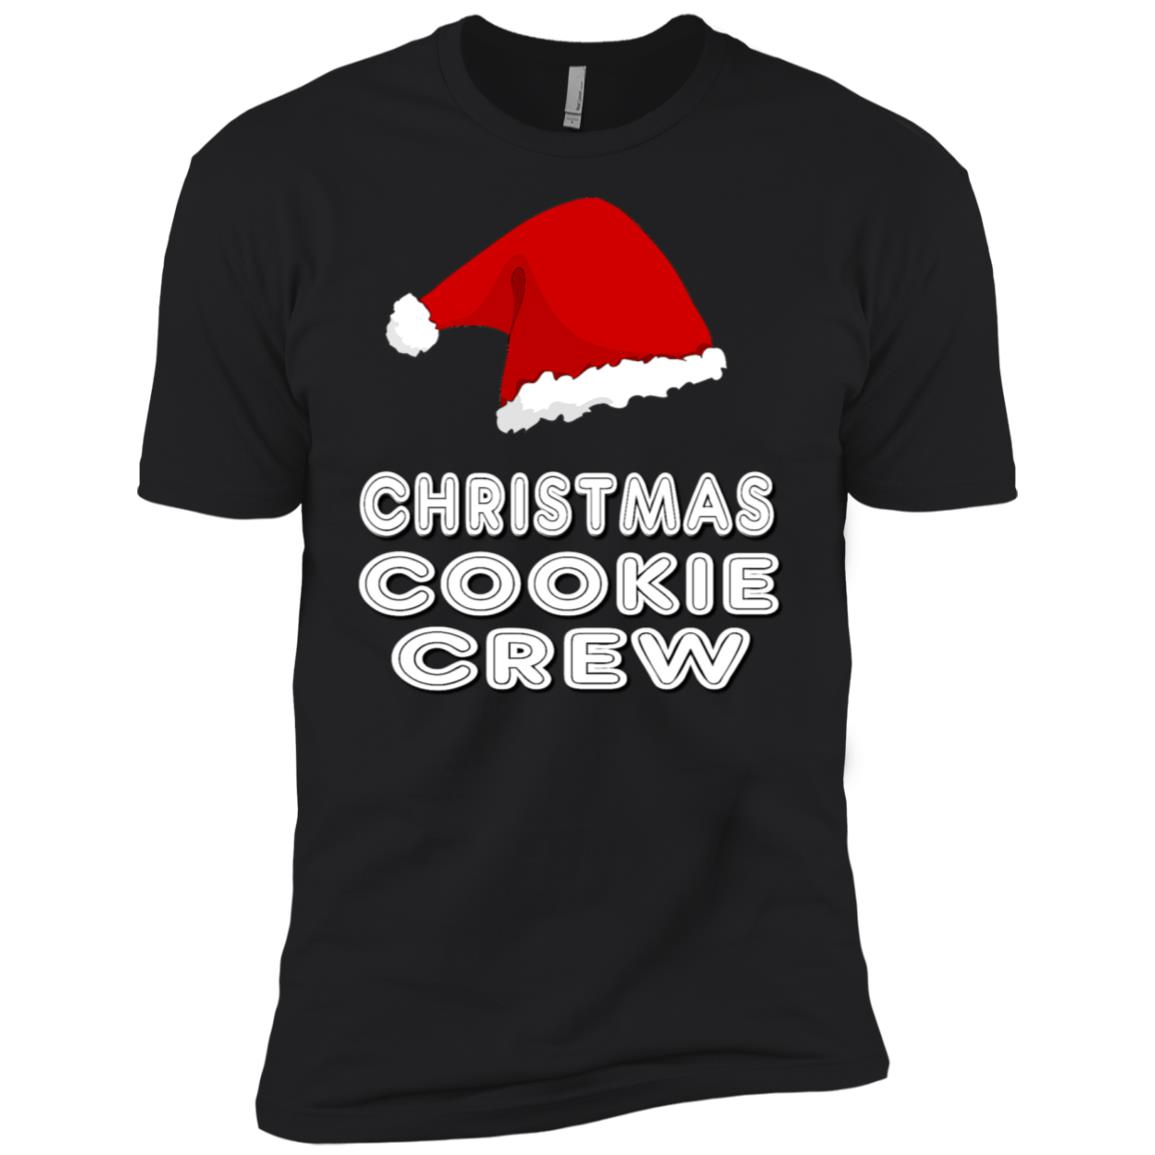 Christmas Baking Team Pajama Cookie Crew -4 Men Short Sleeve T-Shirt